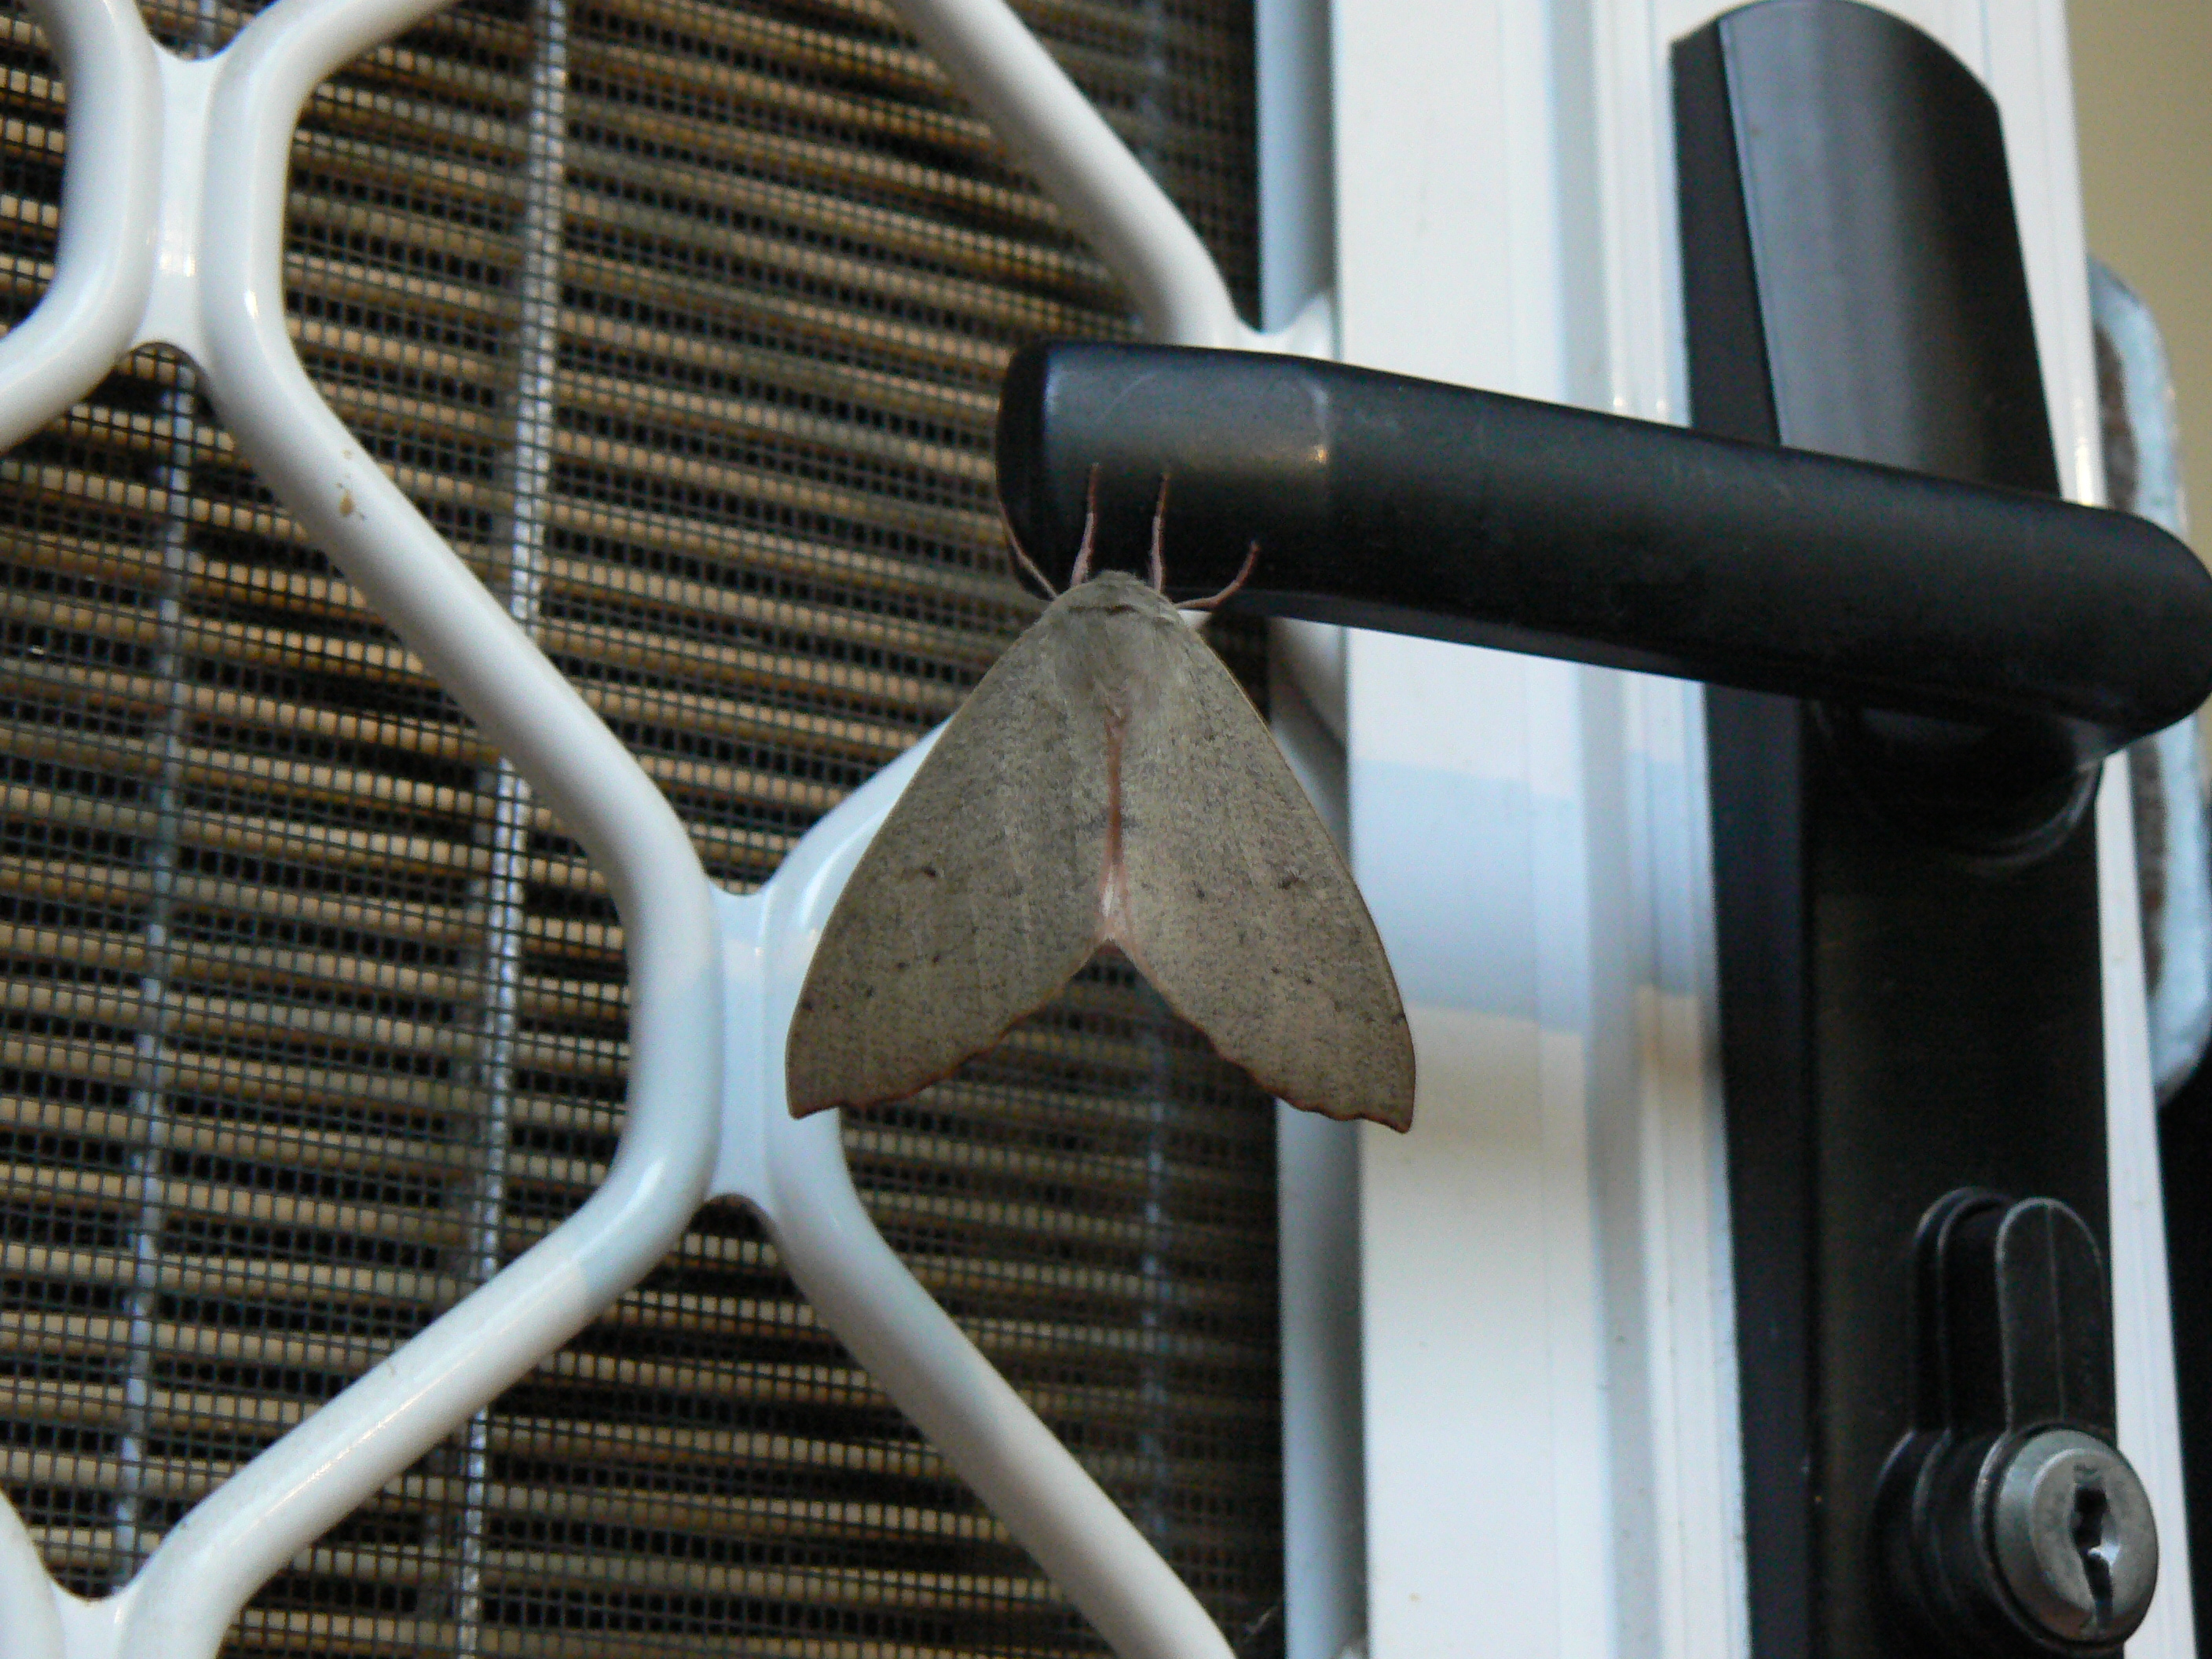 It's a big Canberra Door Moth